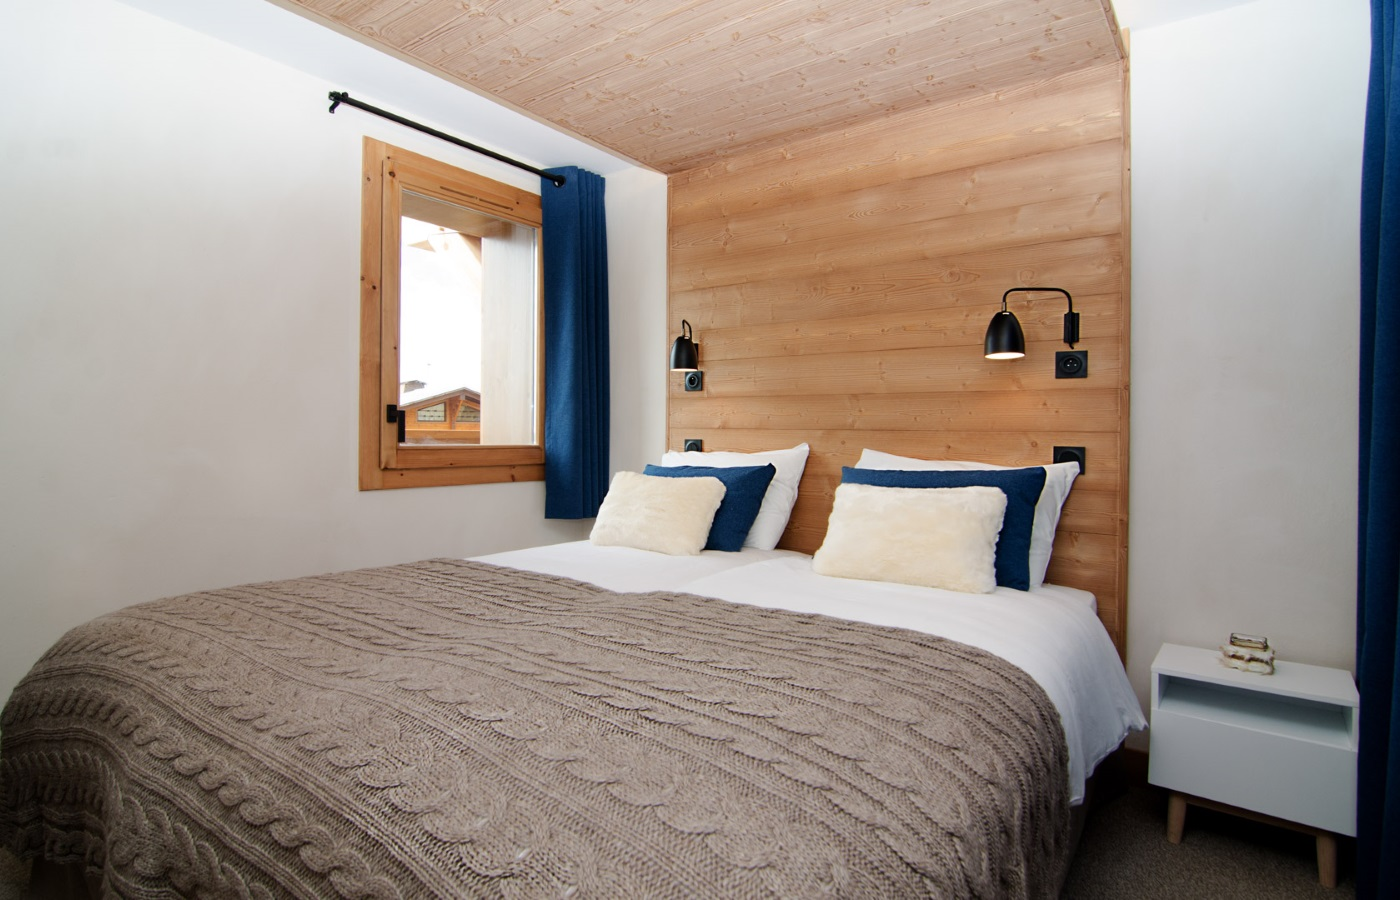 Les Armaillis, Les Saisies (self catered apartments) - Twin bedroom